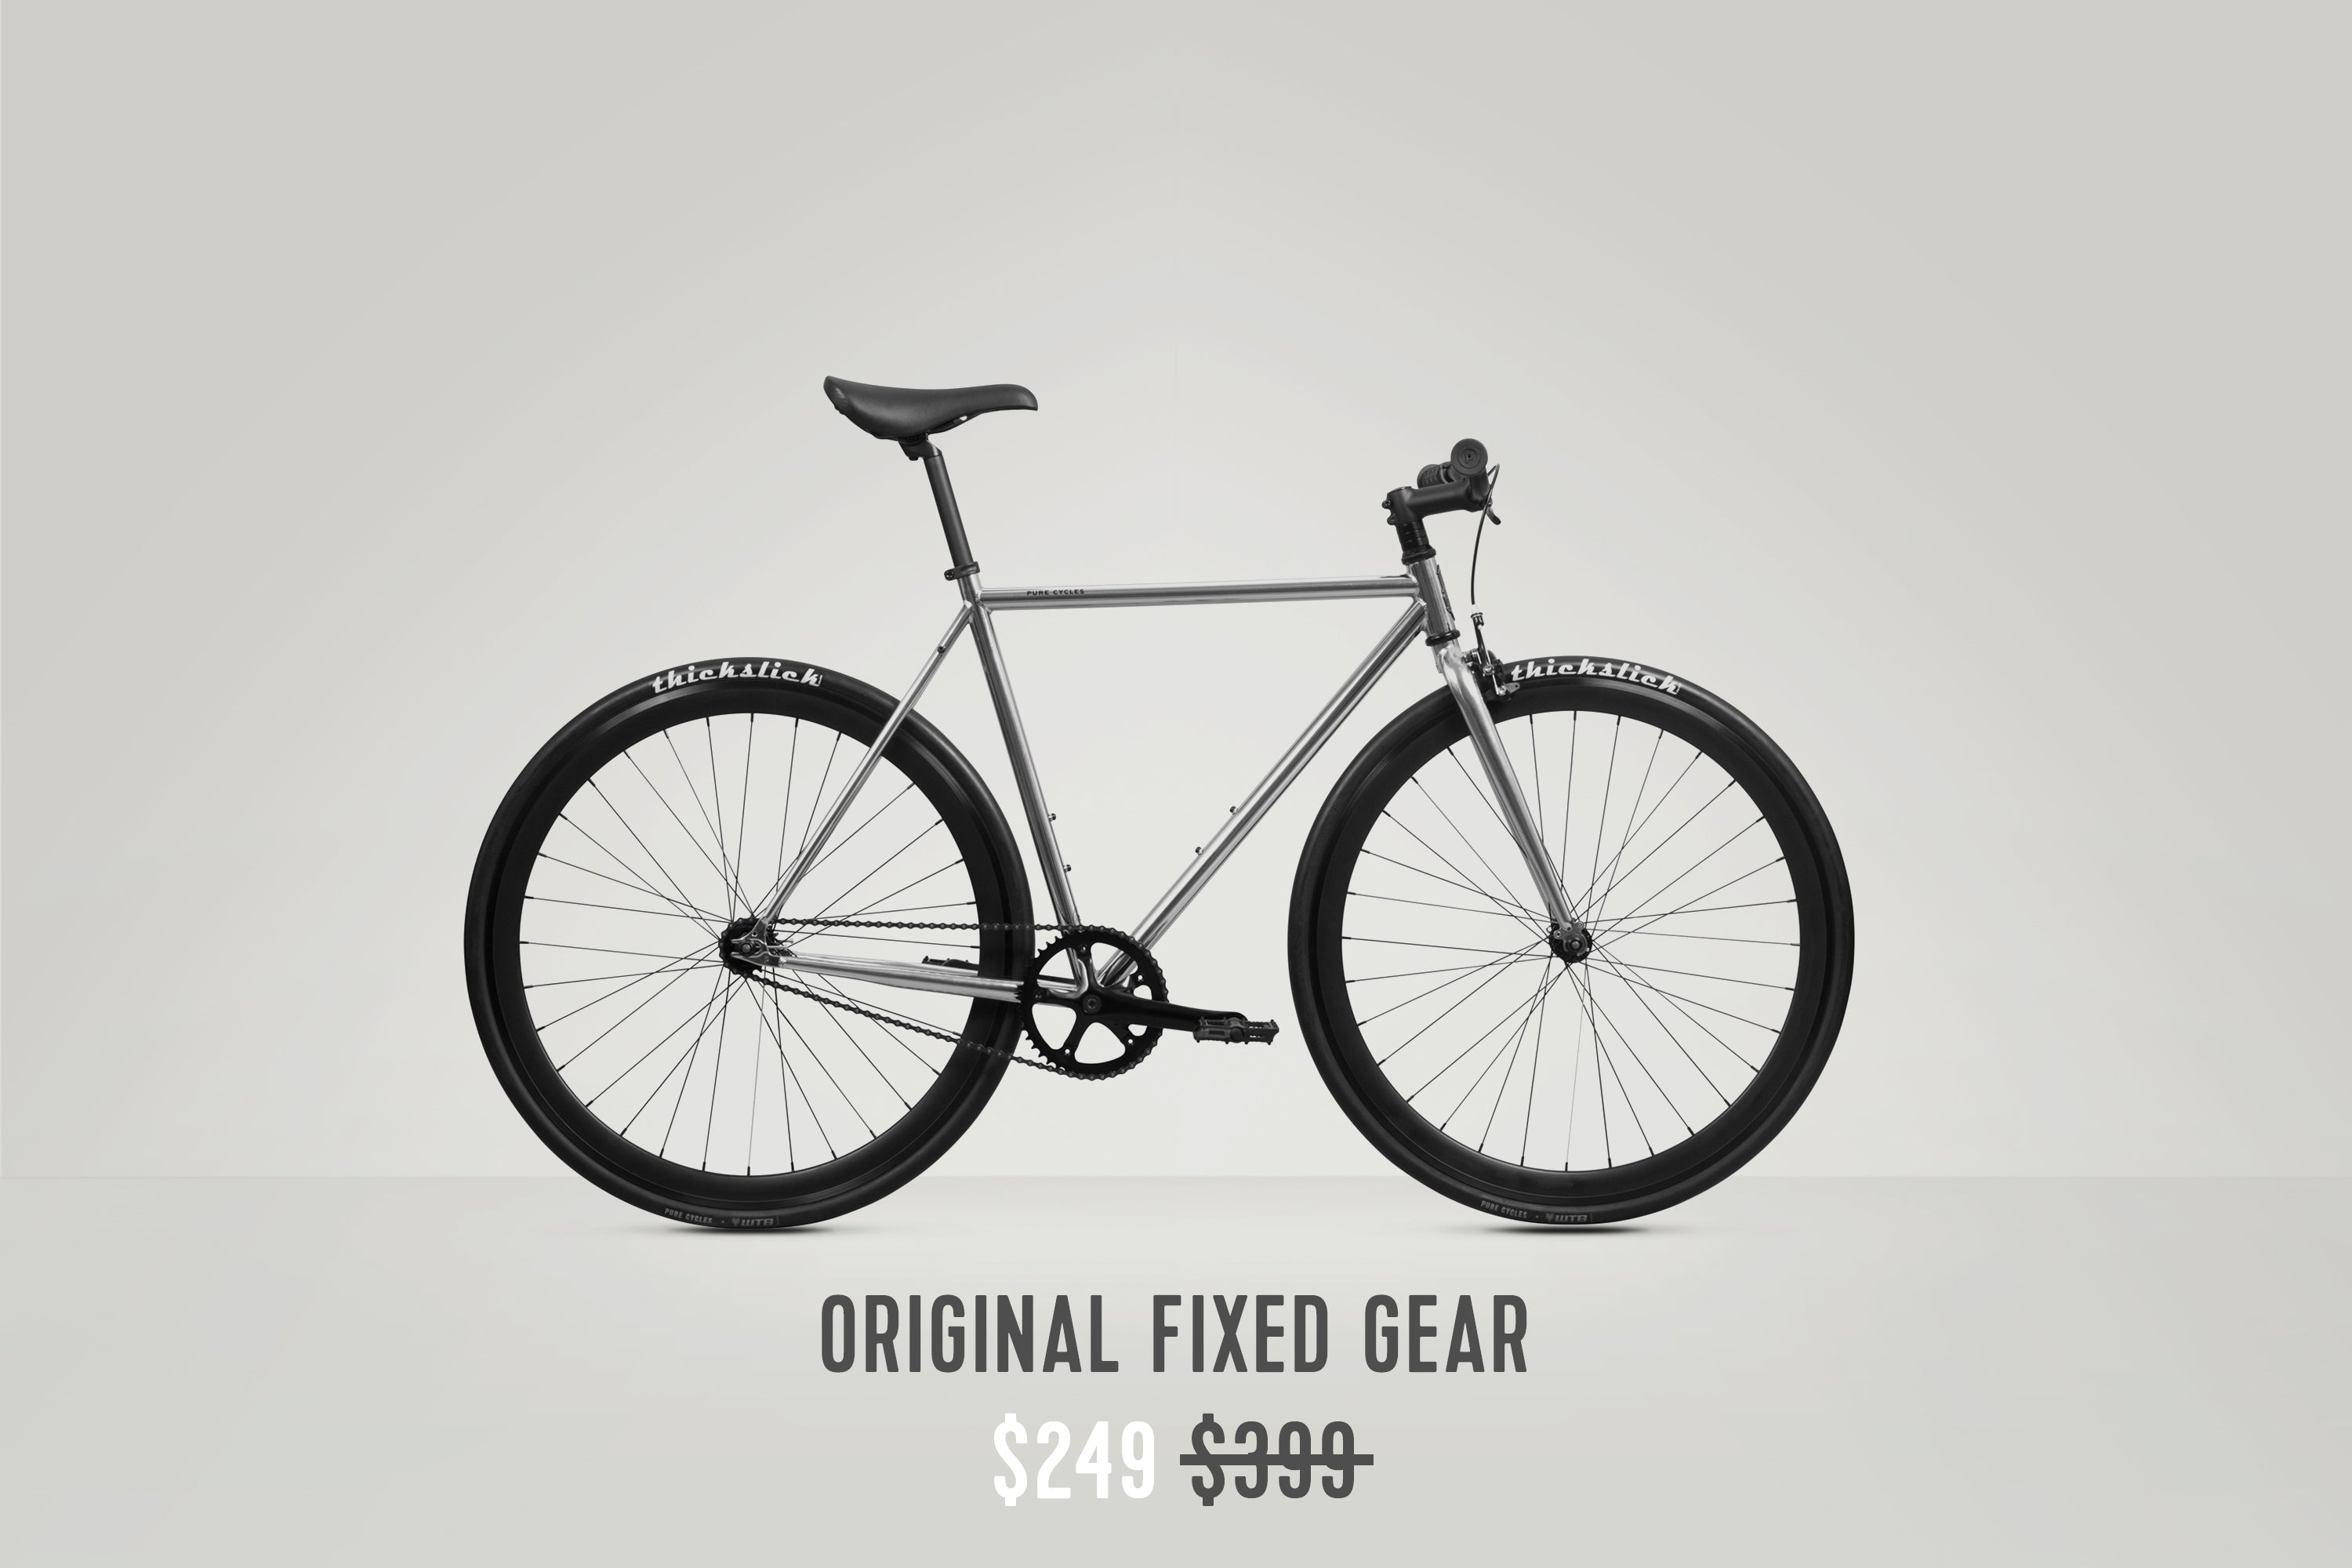 Original Fixed Gear Bikes